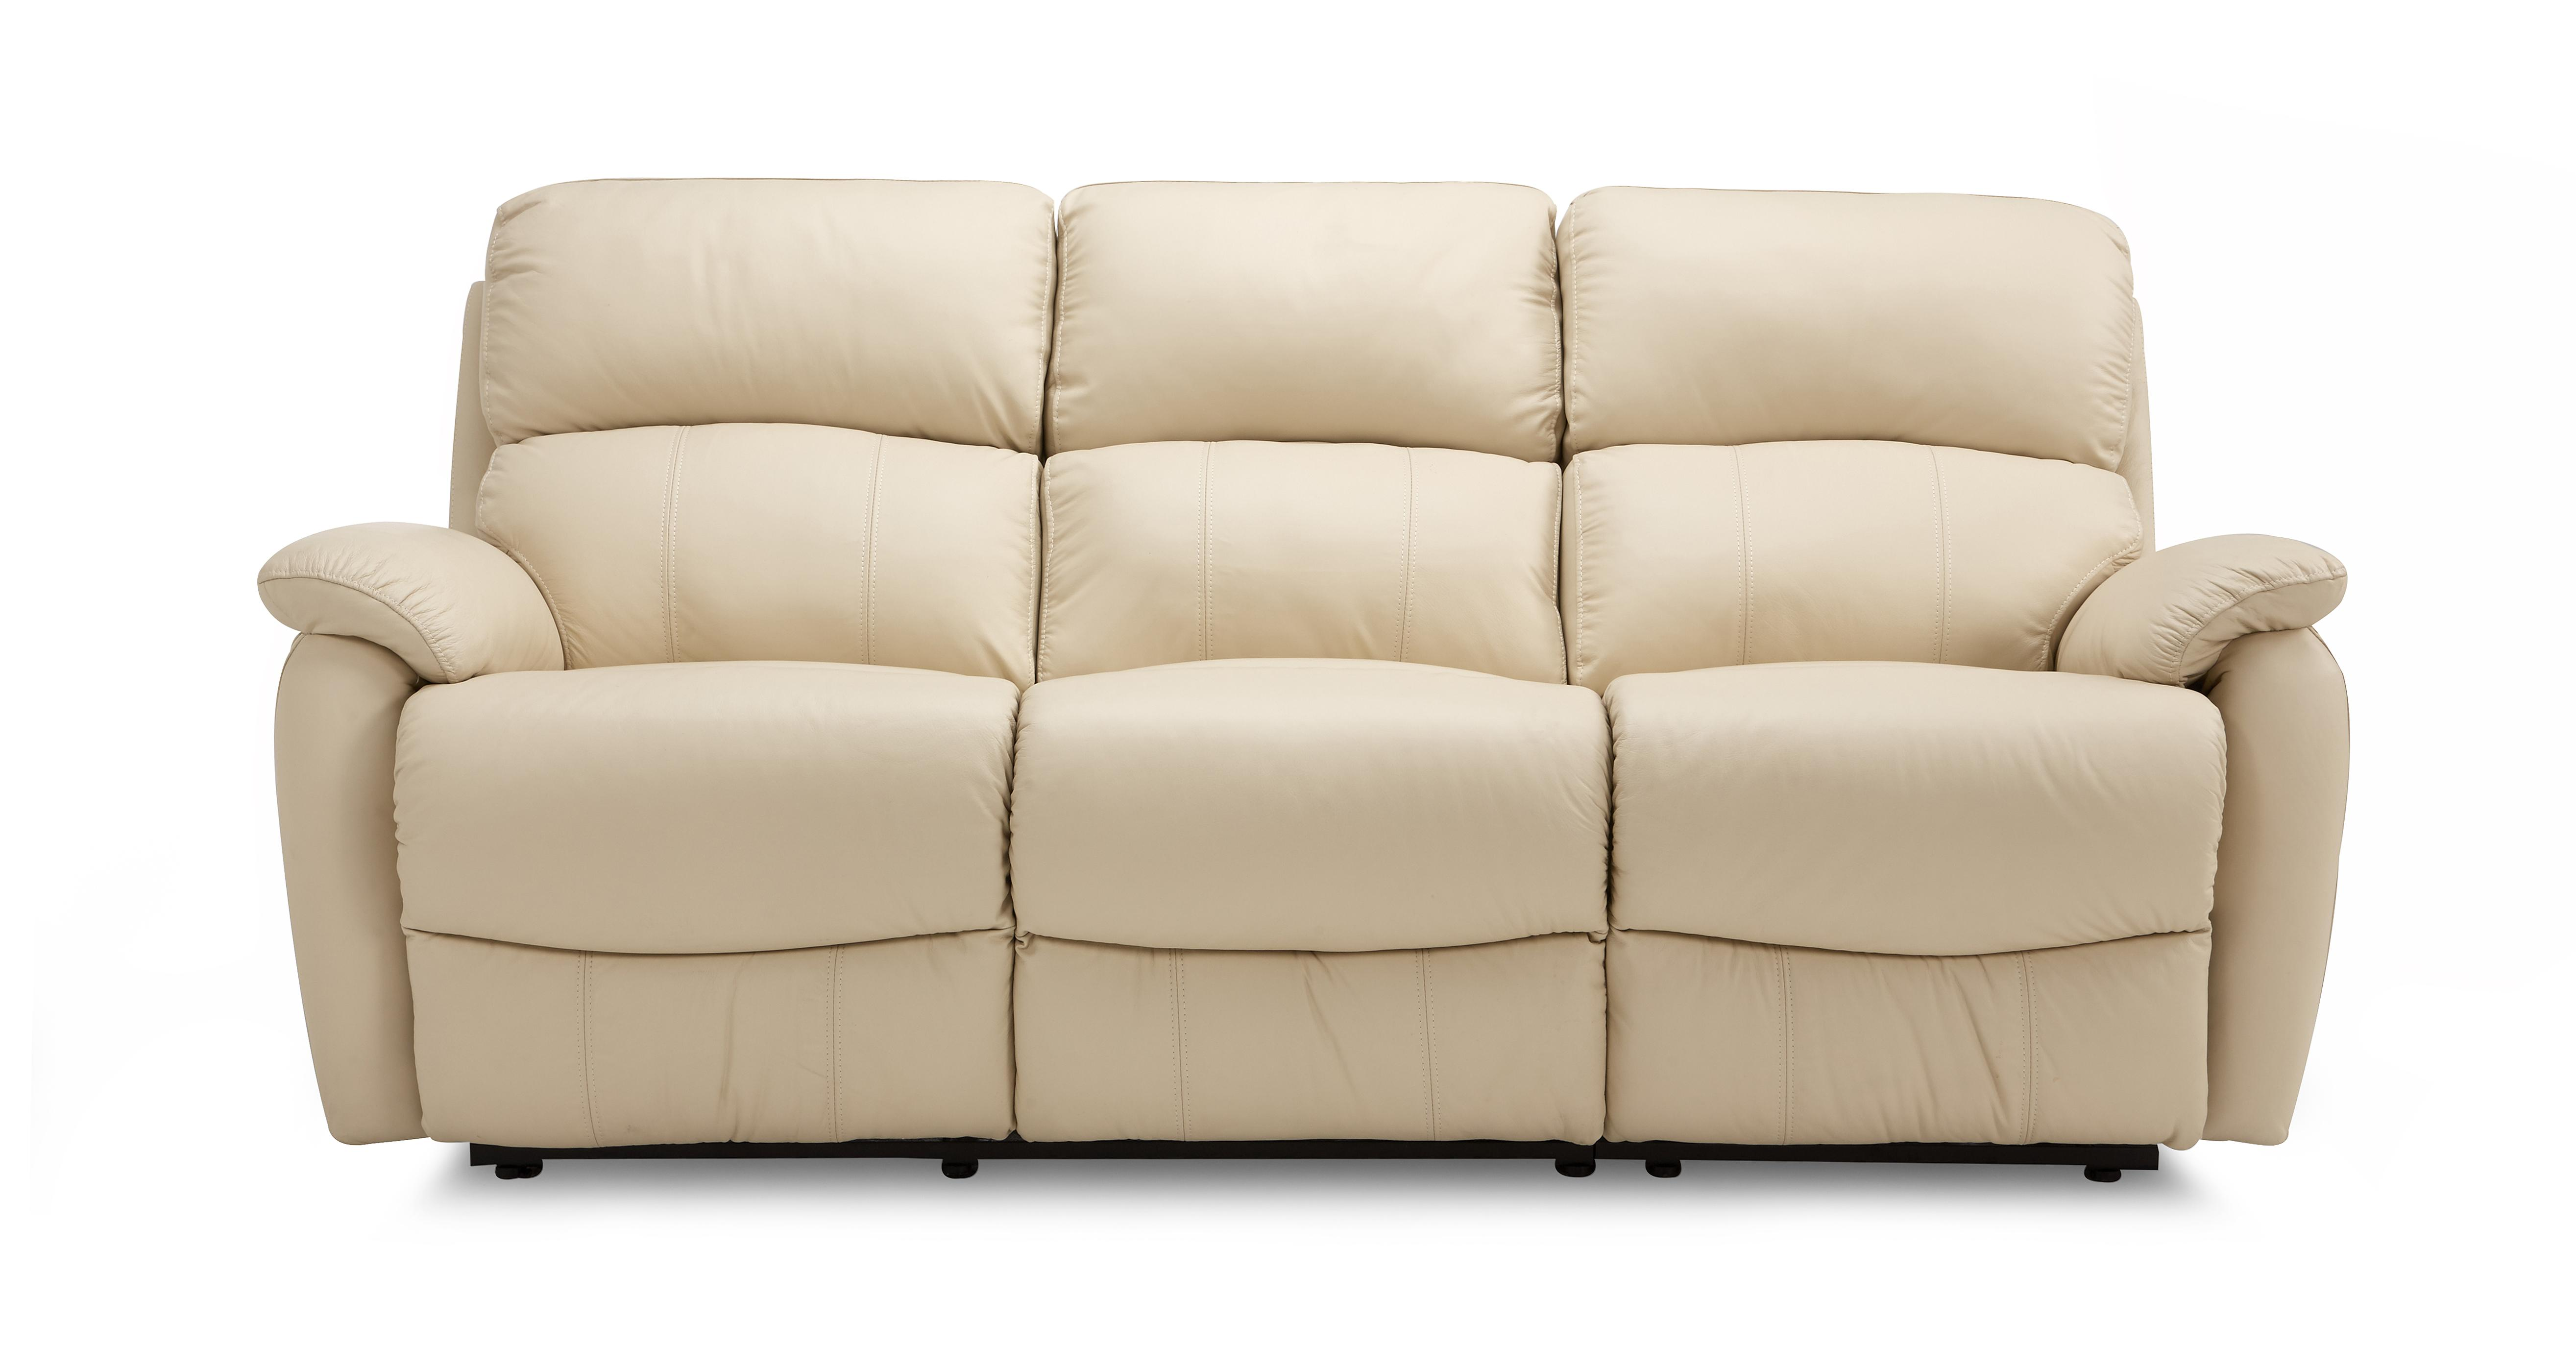 Sofas On Finance No Deposit Uk picture on 3 seater manual recliner peru 100140252p  1 with Sofas On Finance No Deposit Uk, sofa 7b3ab9e2d4fa8d1d199173a29383b61e